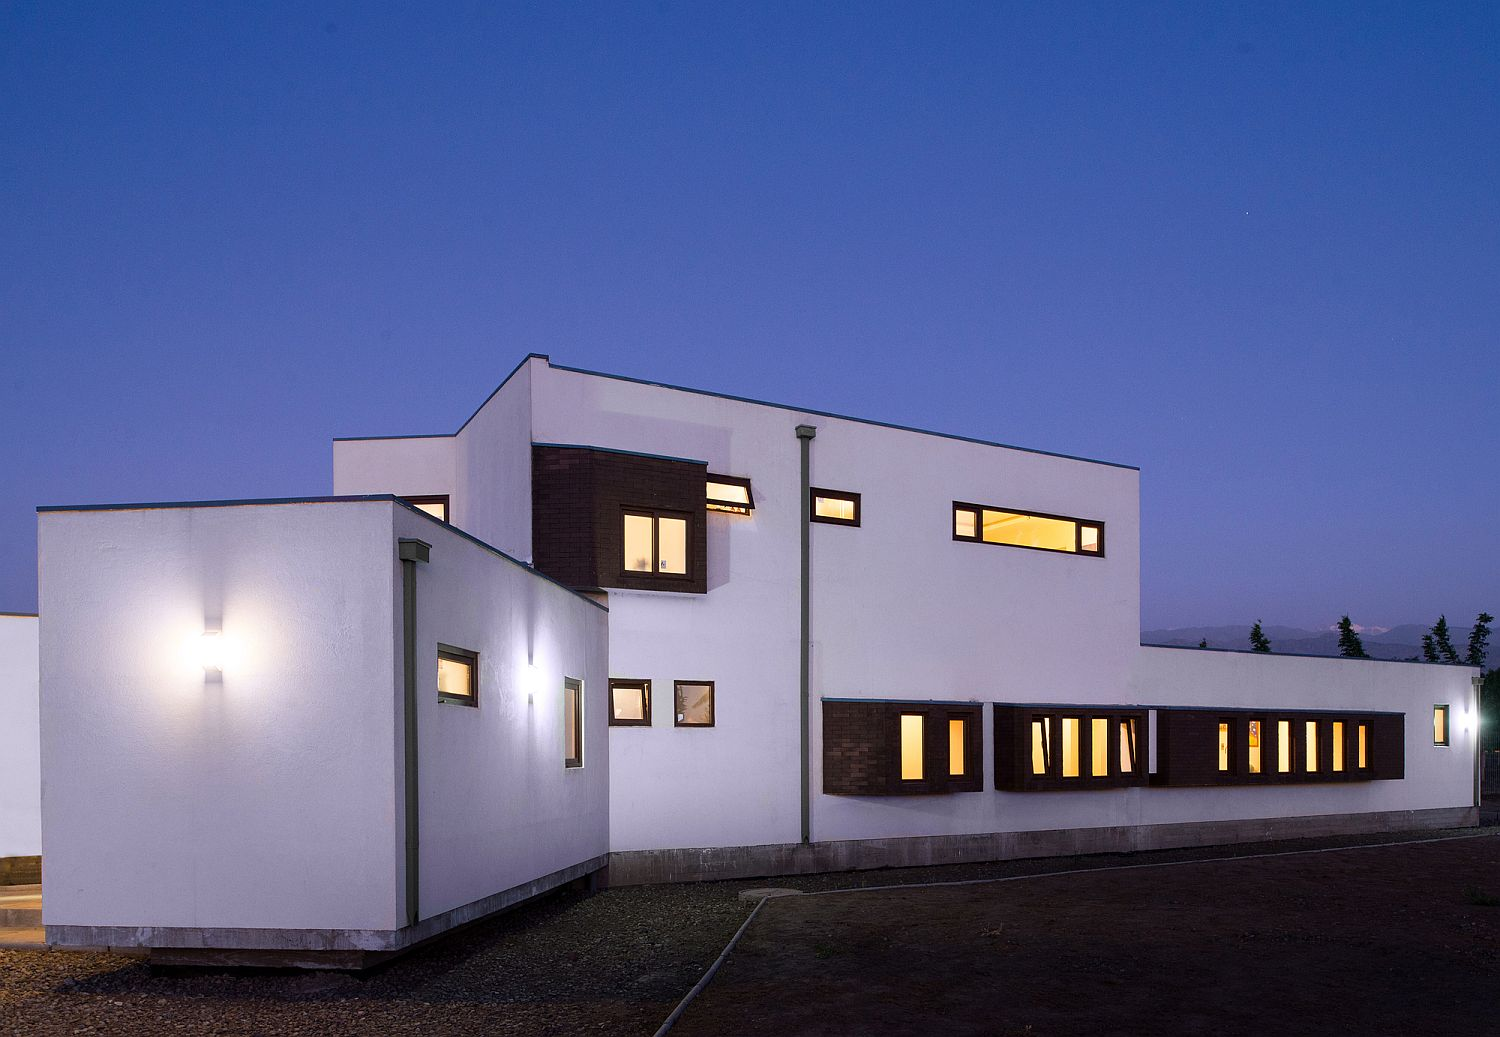 Simple and efficient design of the contemporary home creates a controlled climate indoors